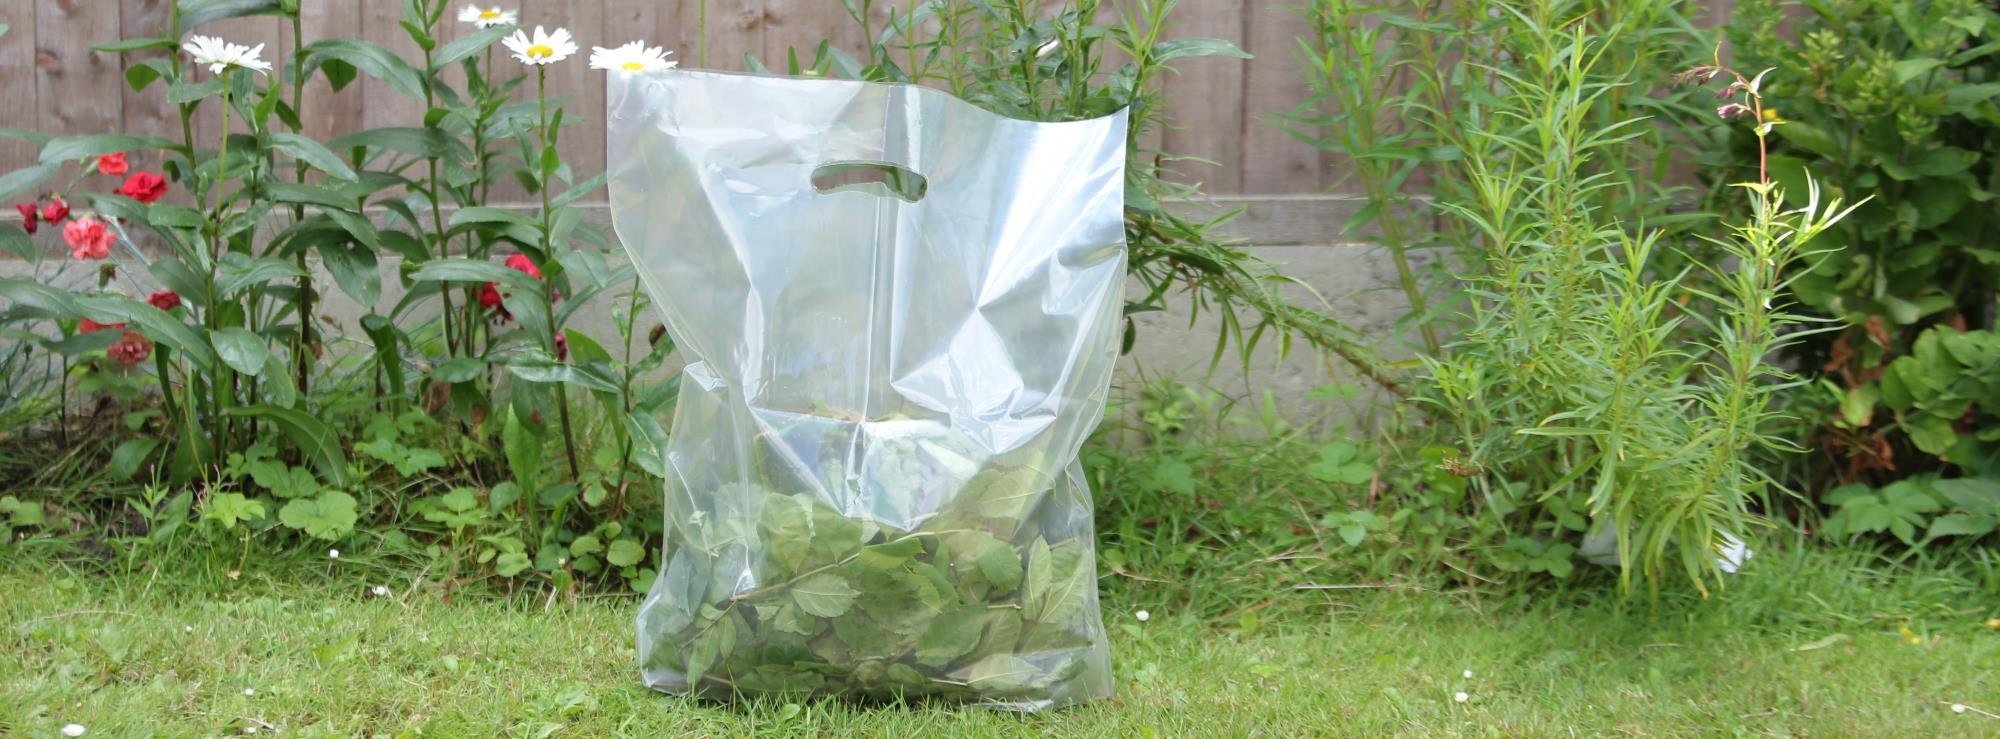 Biodegradable packaging from Polybags